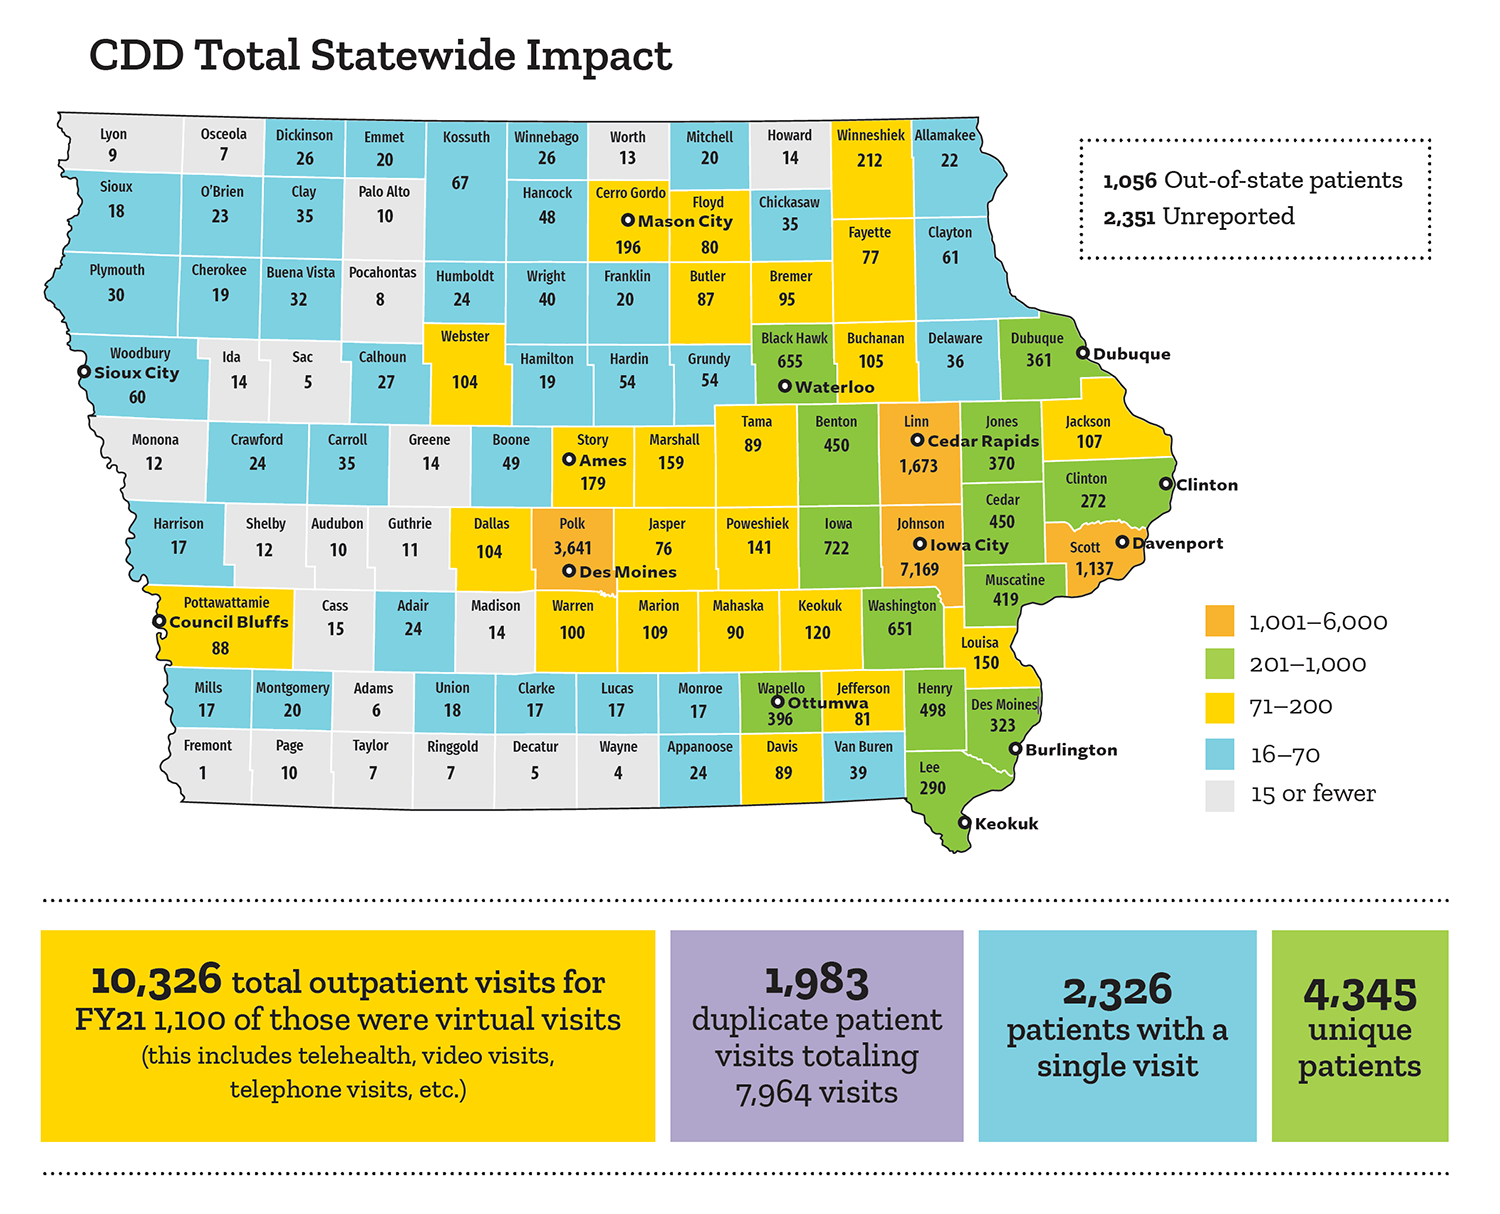 Map demonstrating the statewide impact that CDD has over Iowa's 99 counties